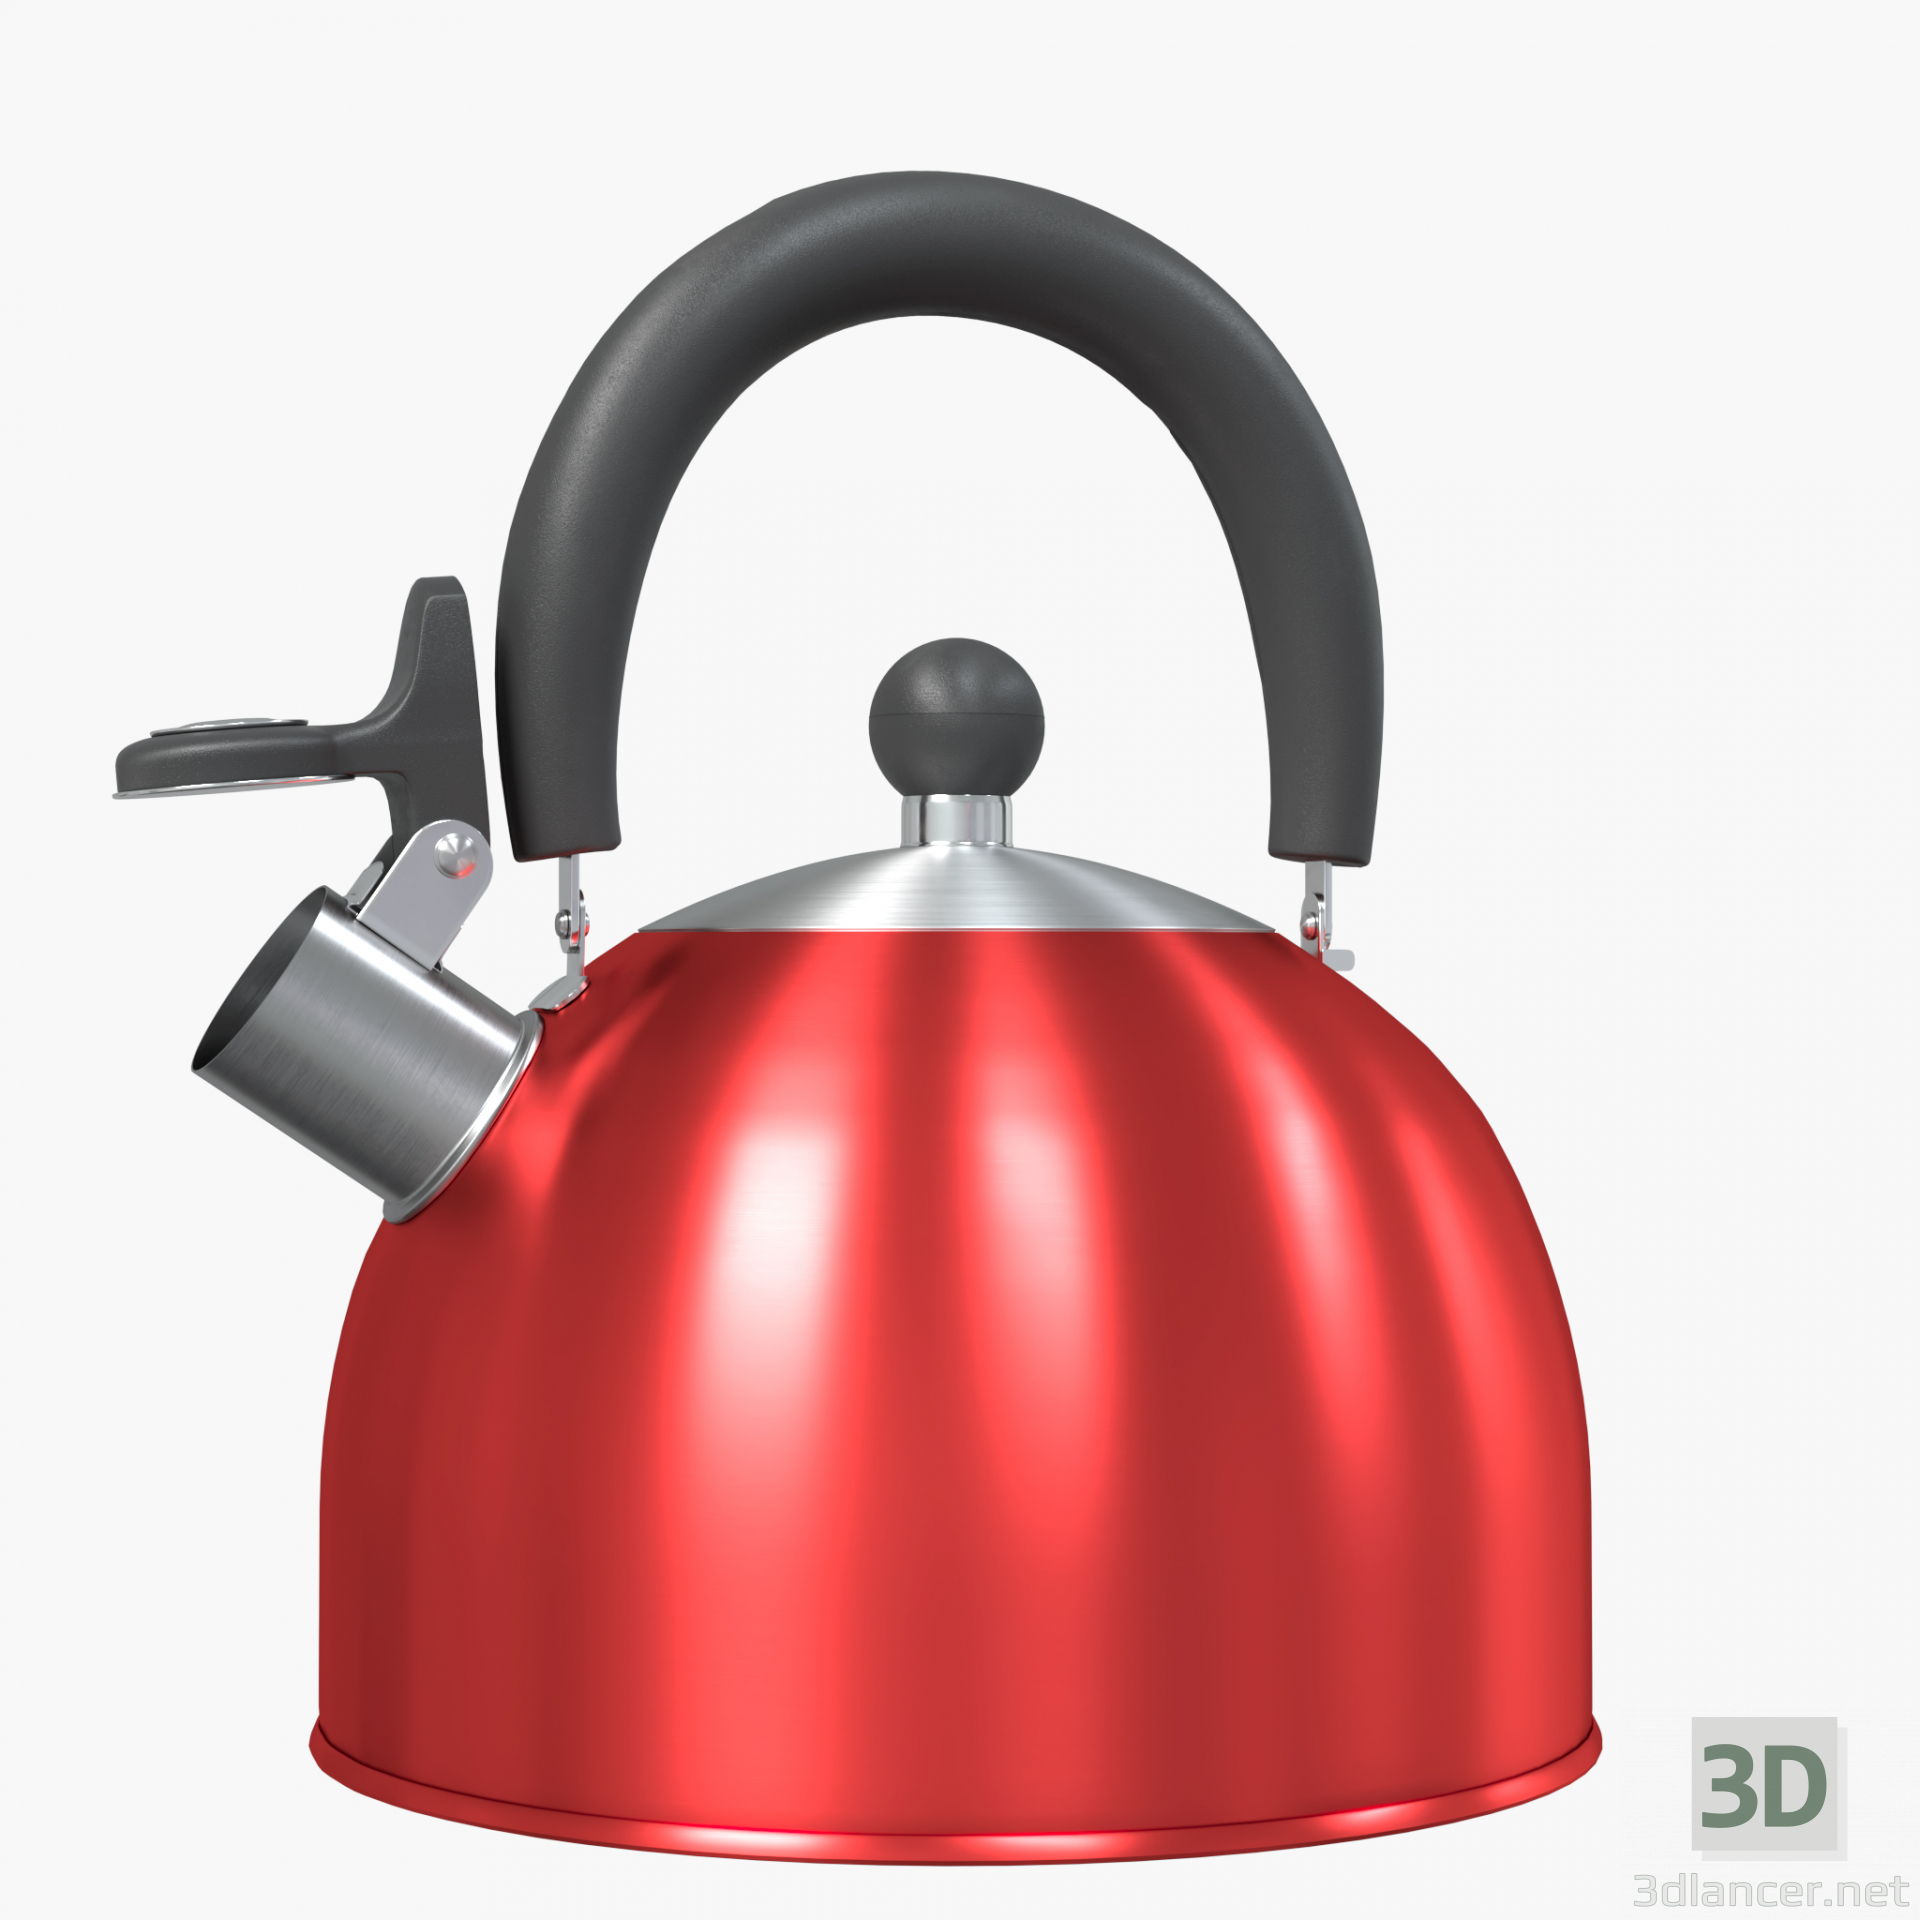 3d Steel red teapot with a whistle model buy - render